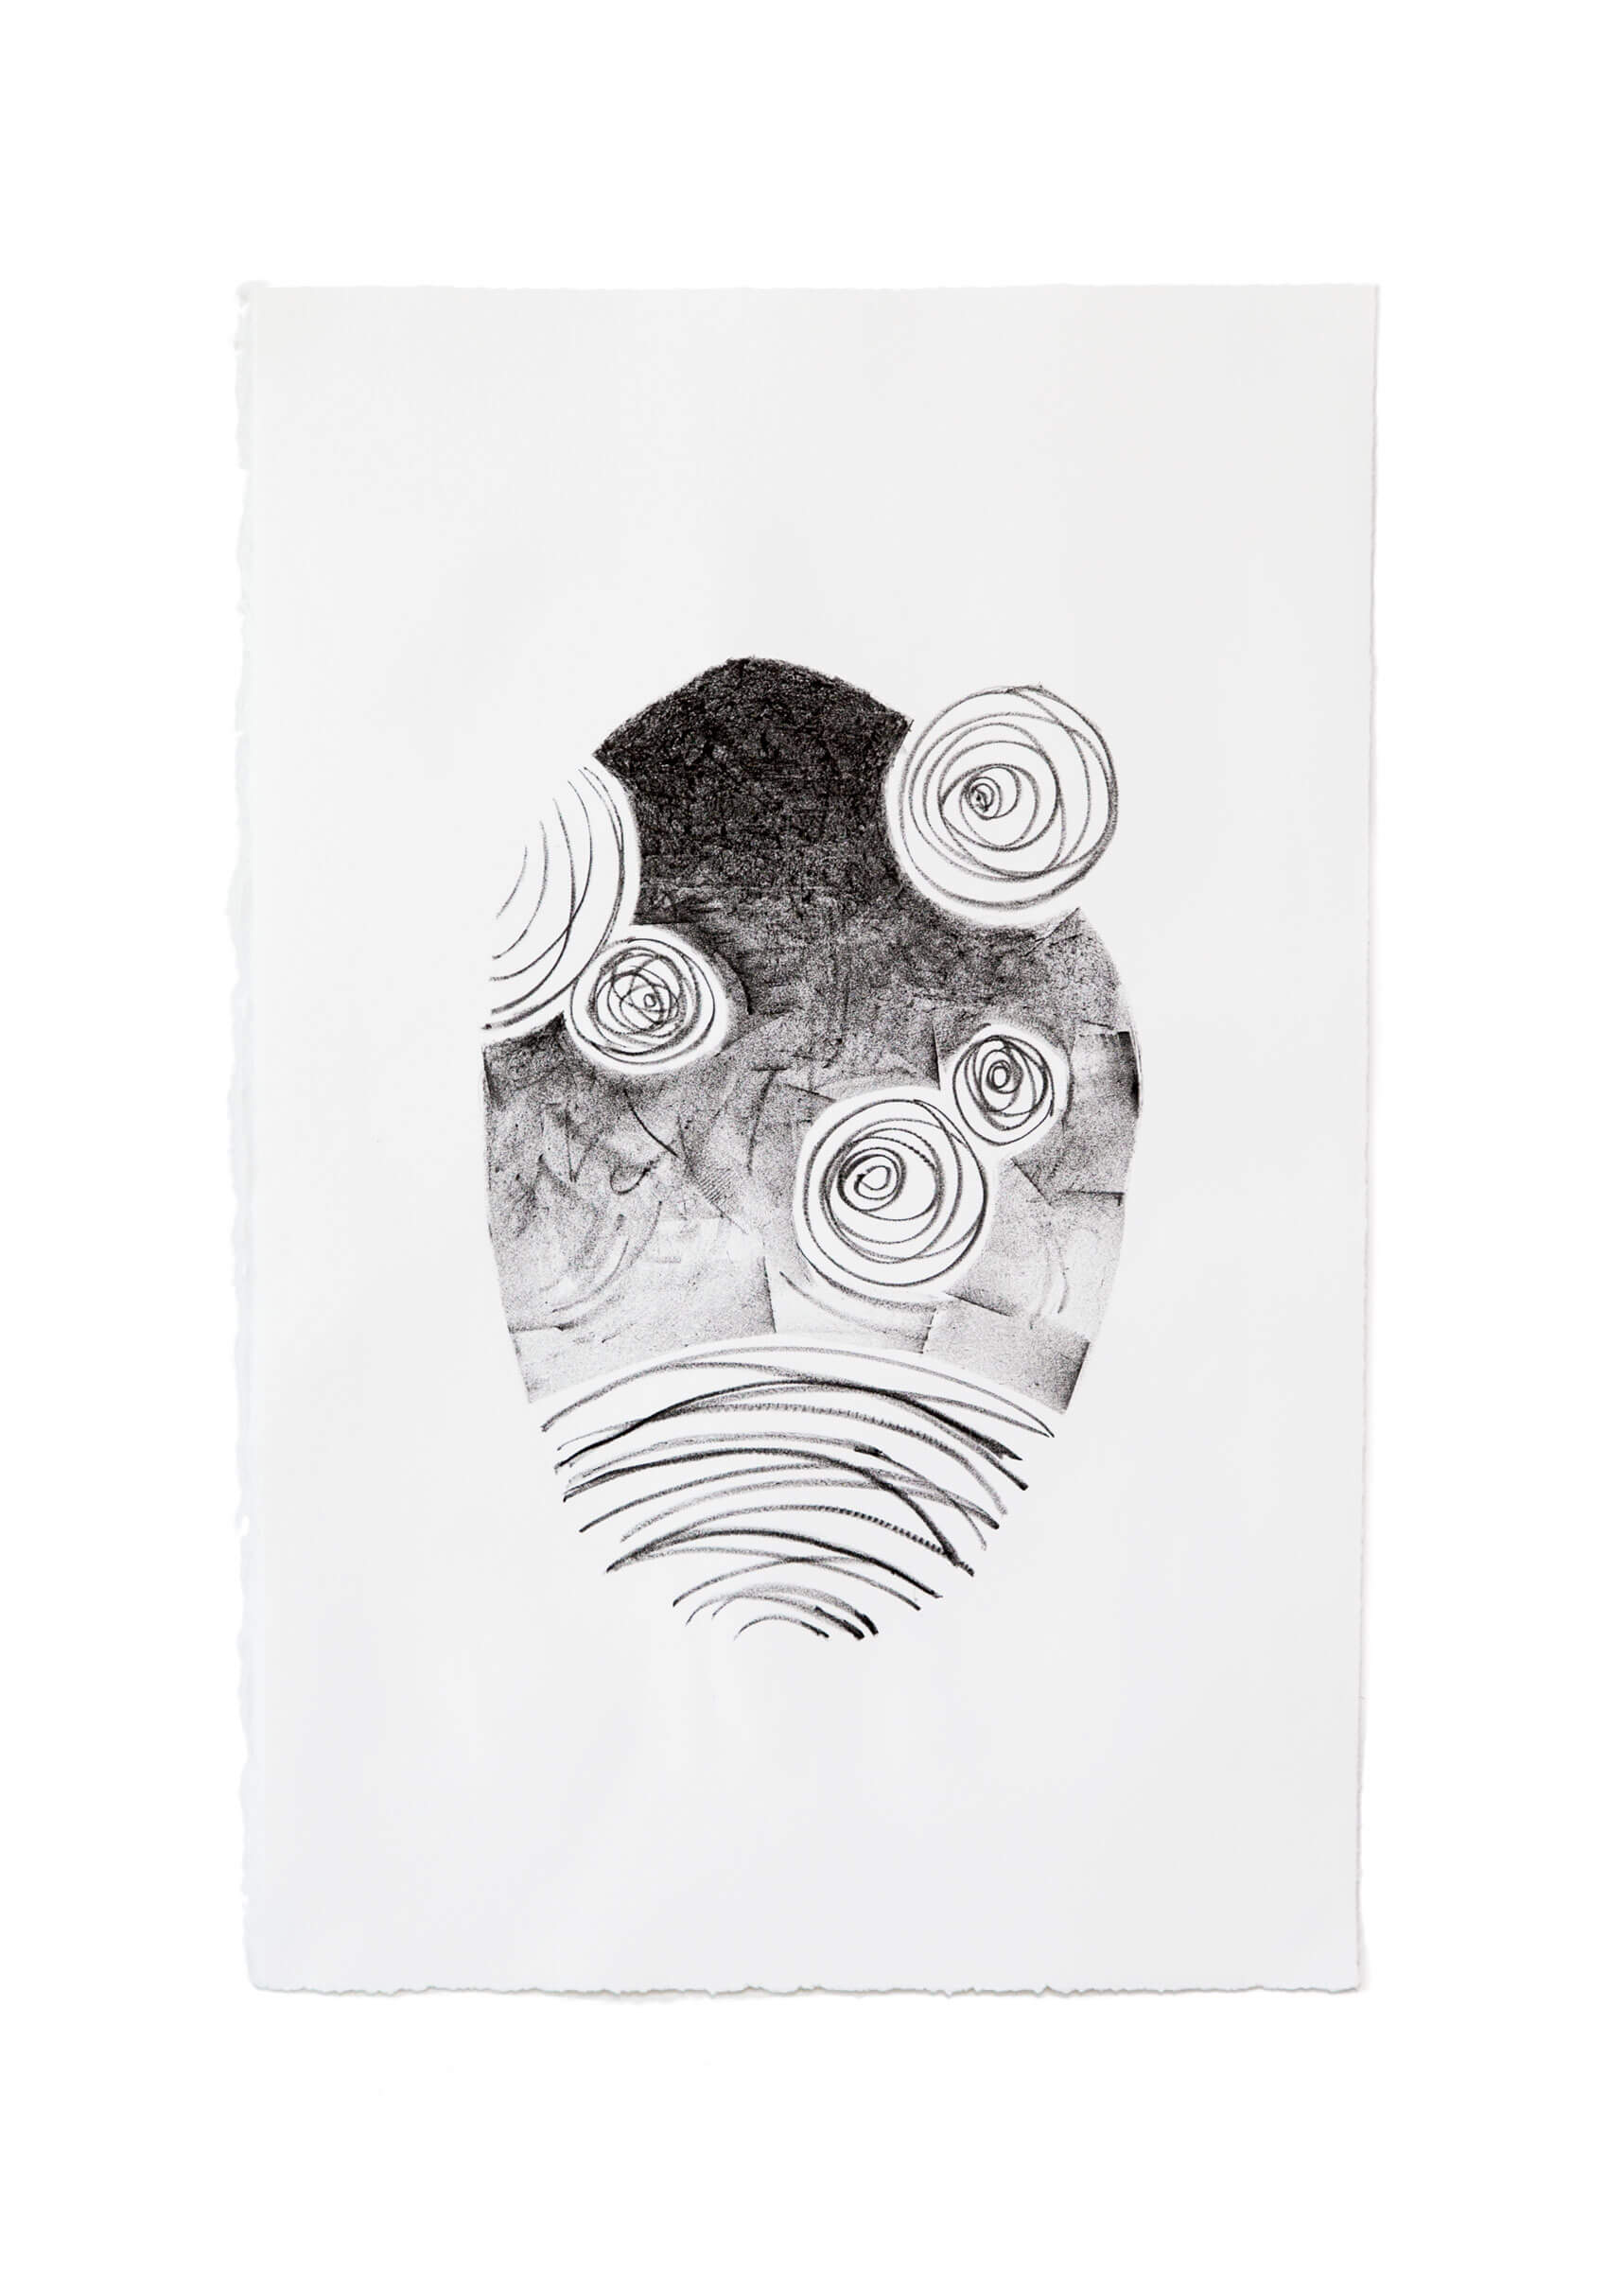 Space I - Lithograph by Emily ! Duong